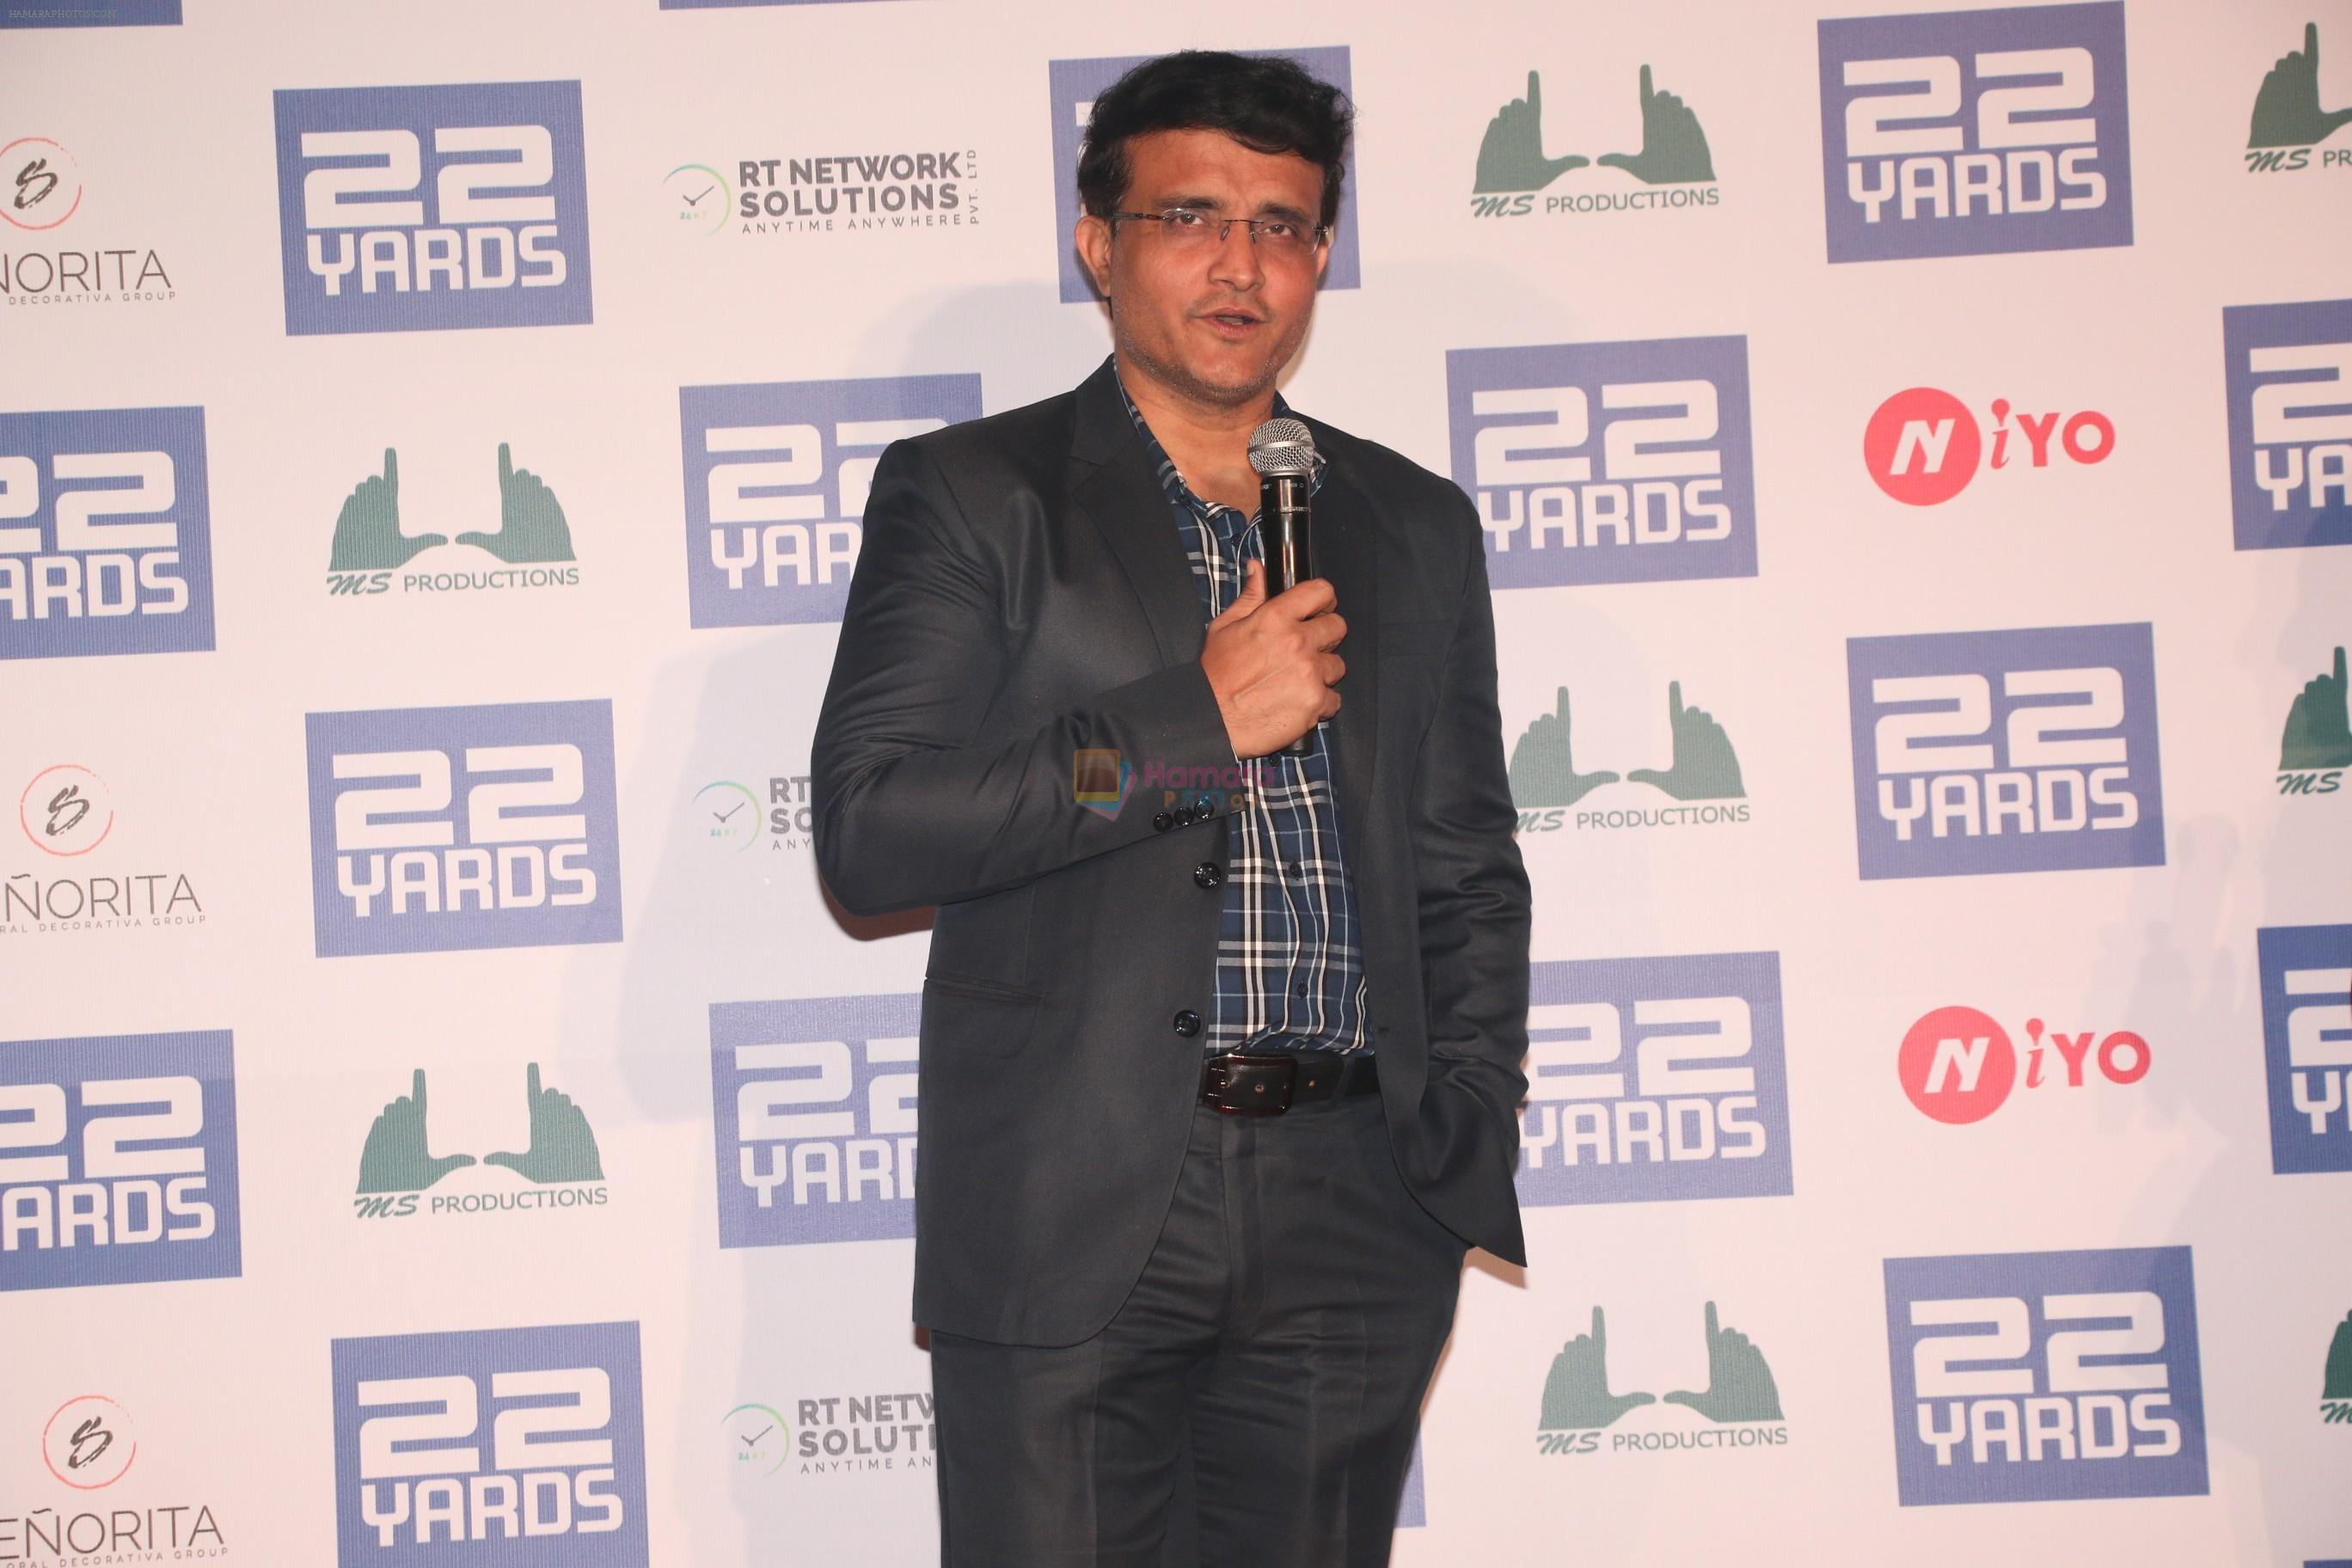 Sourav Ganguly at the Trailer launch of film 22 Yards at pvr juhu on 16th Jan 2019